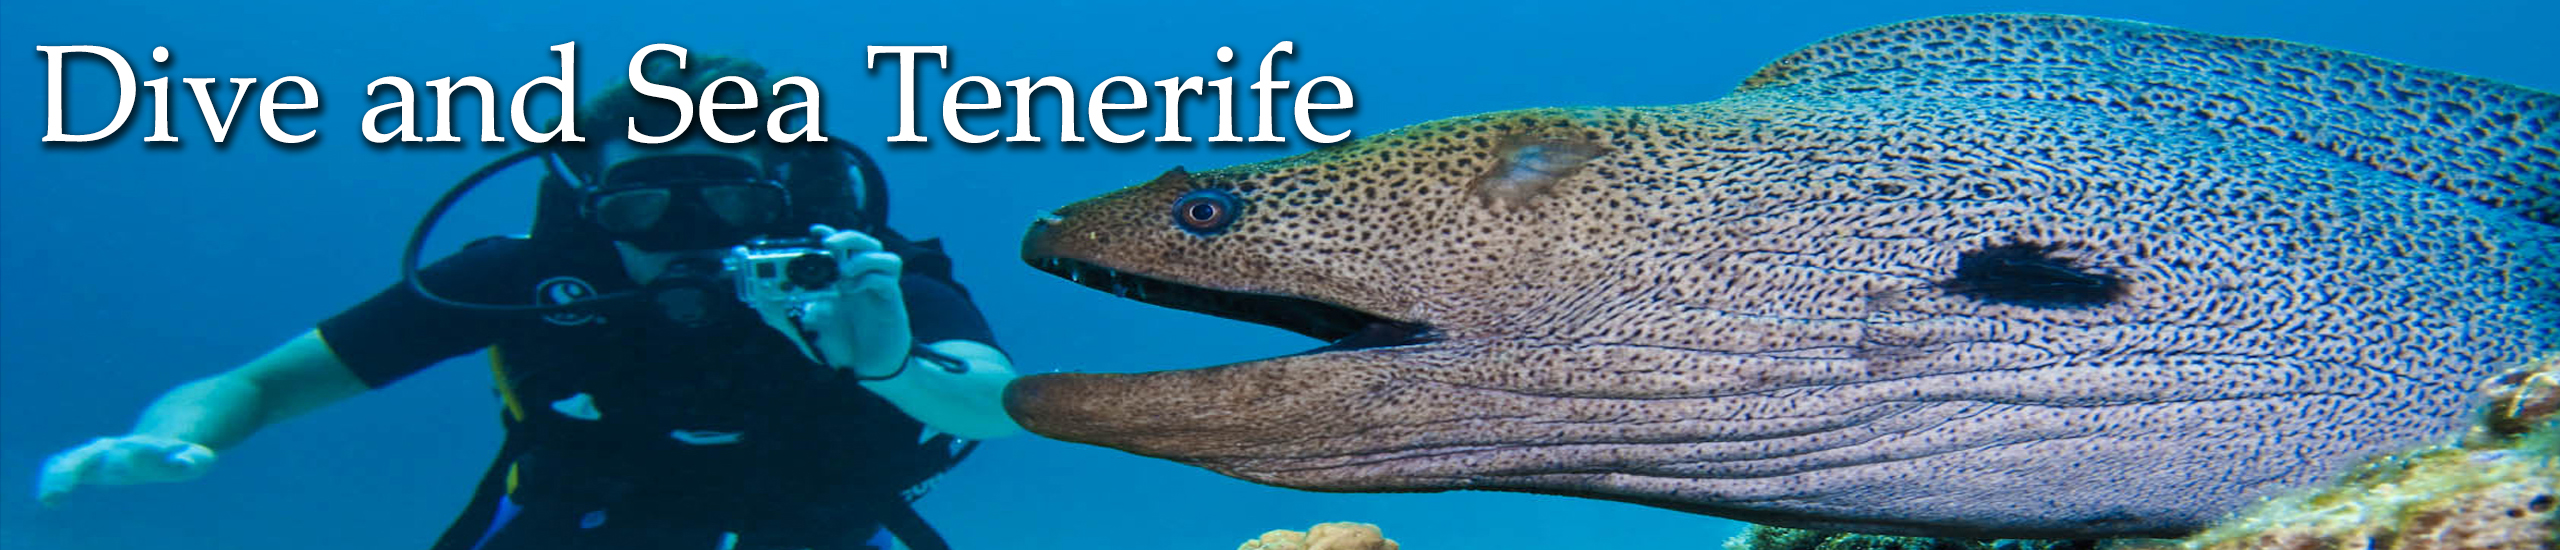 Diving in Tenerife-Dive-and-sea-tenerife-banner-moray-eel